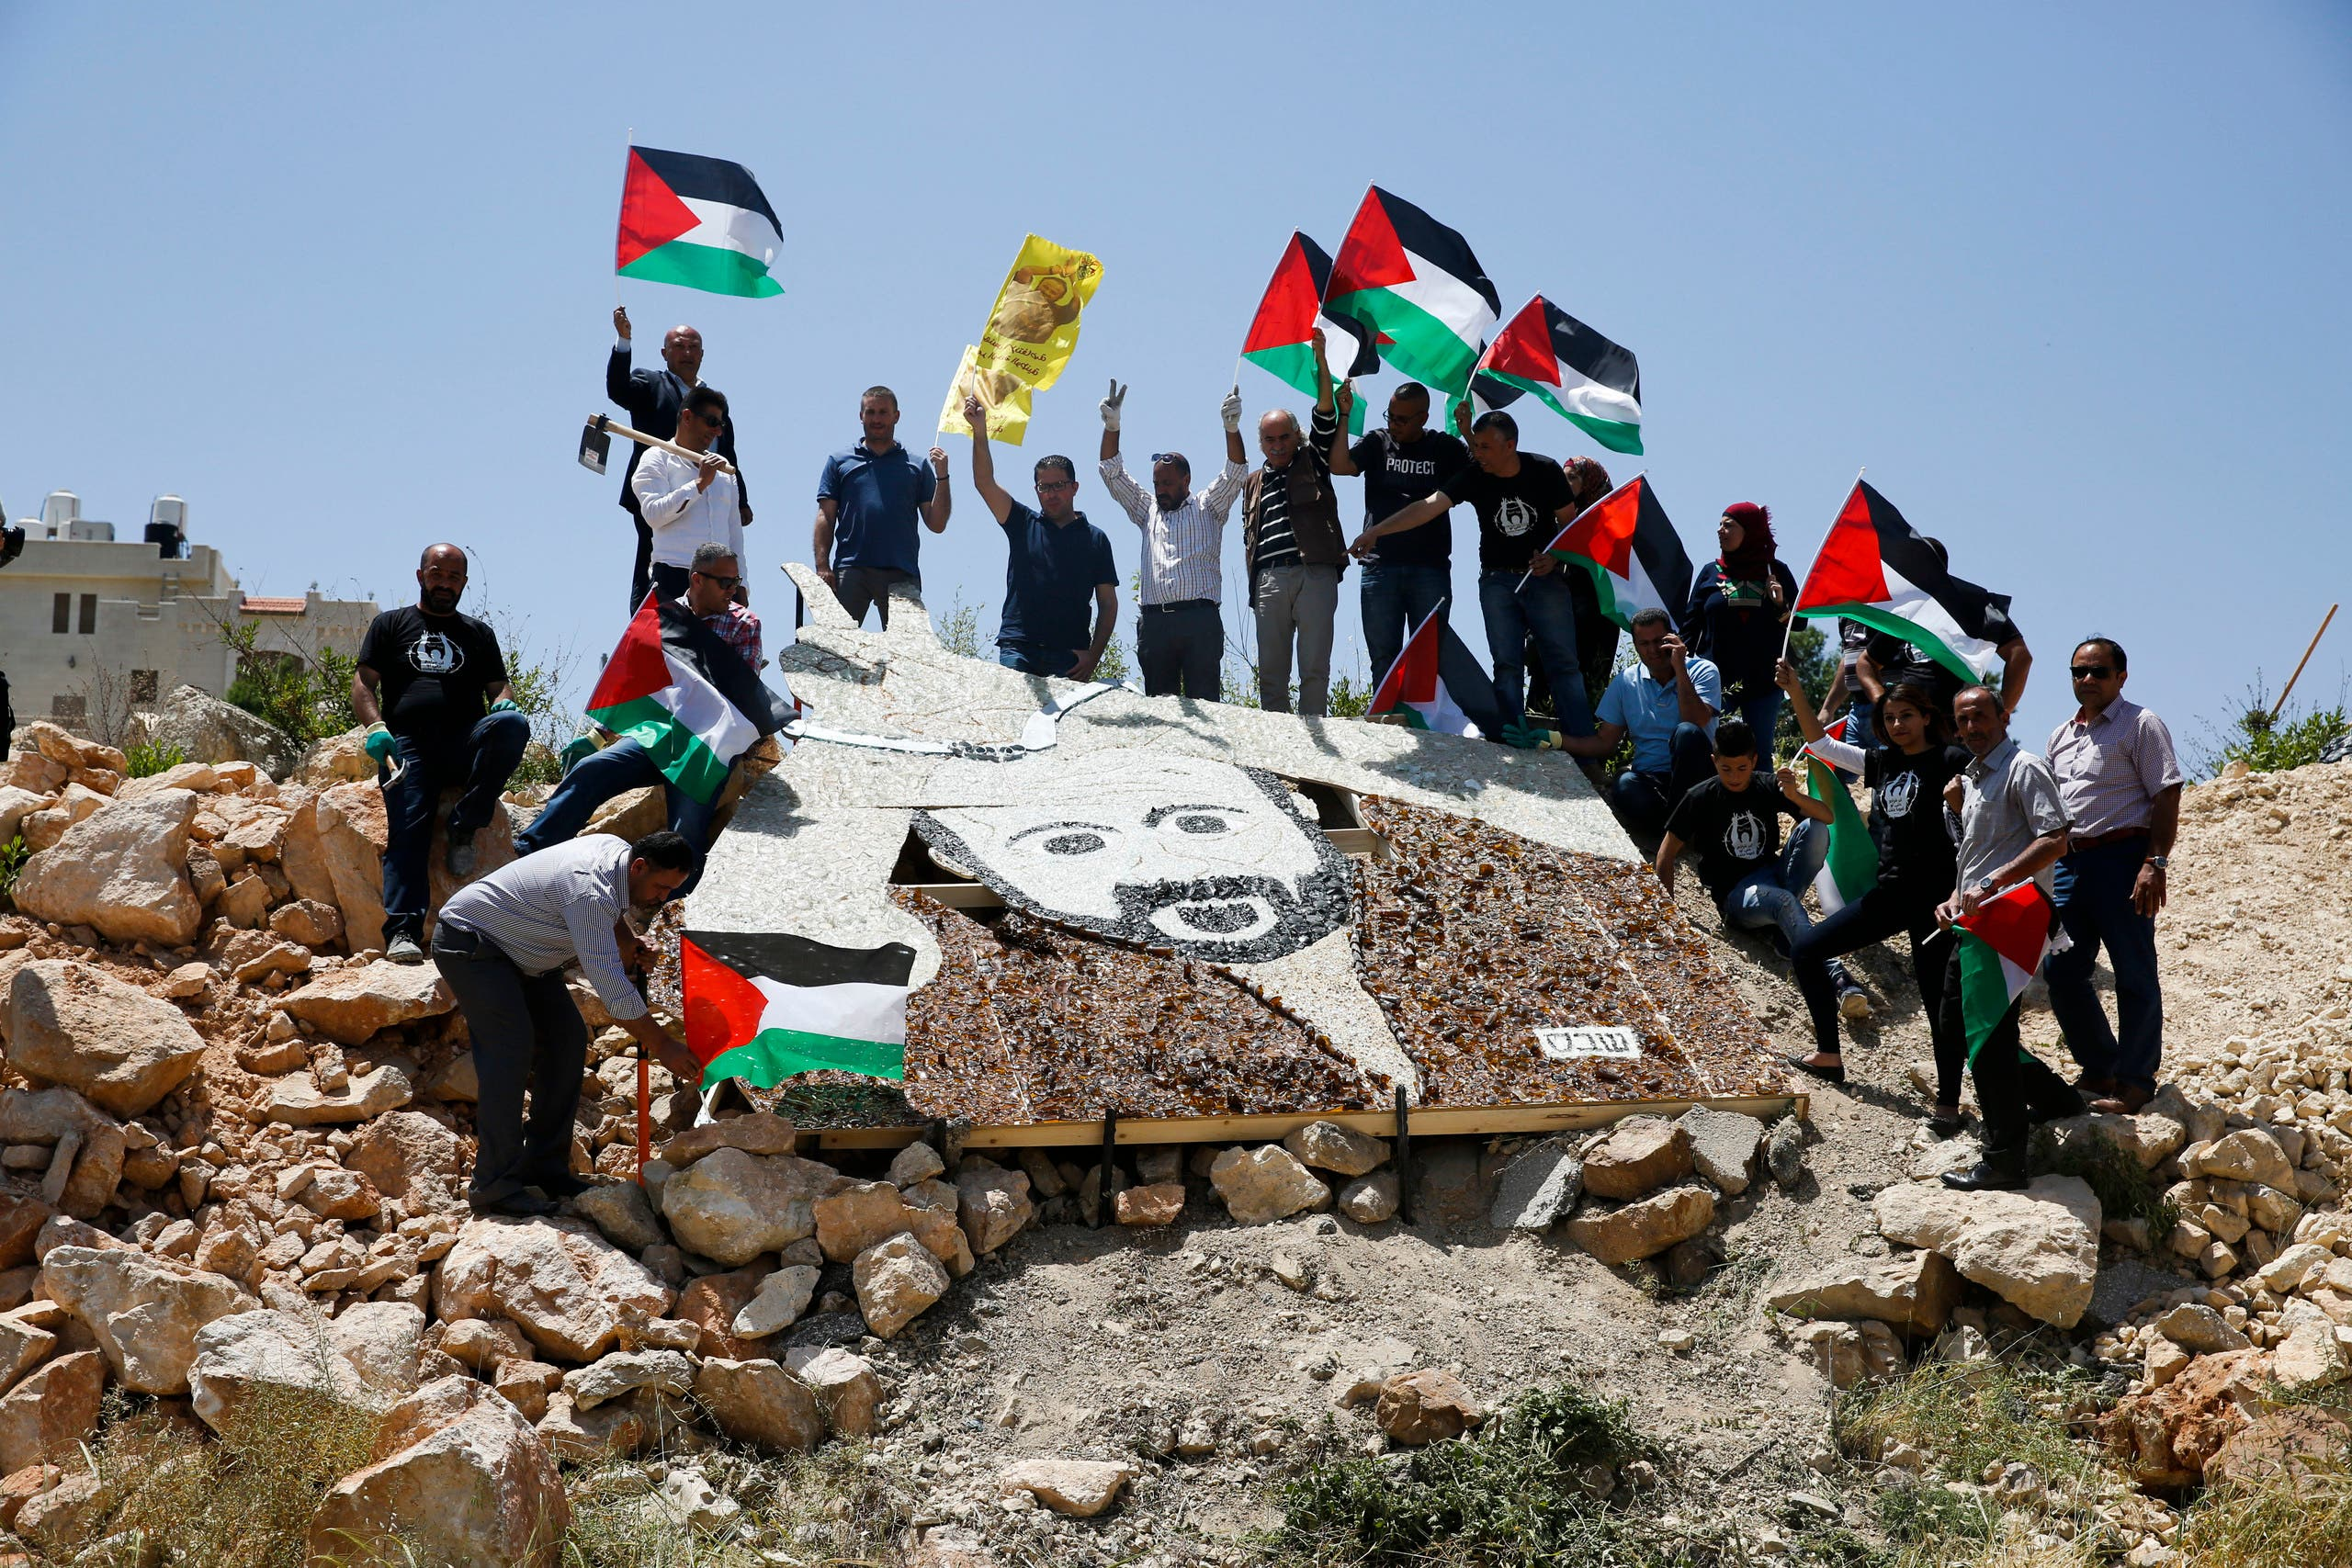 Palestinian activists stand around a mosaic portrait of Marwan Barghouti near an Israeli military installation in the West Bank city of Ramallah on May 9, 2017. (AP)